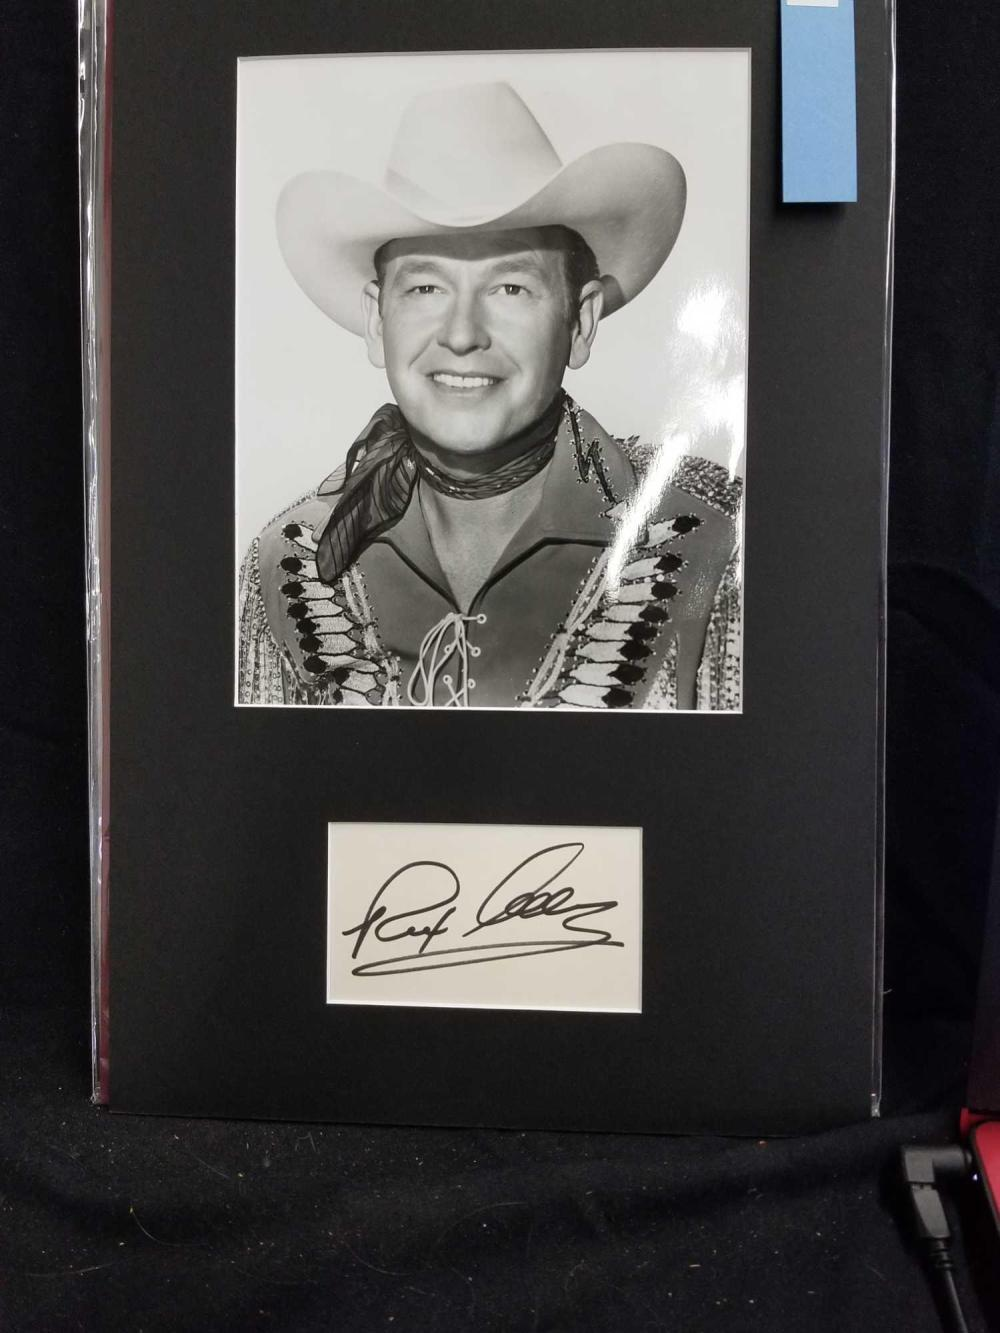 REX ALLEN BLACK & WHITE PUBLICITY PHOTO W/ SIGNATURE CAED